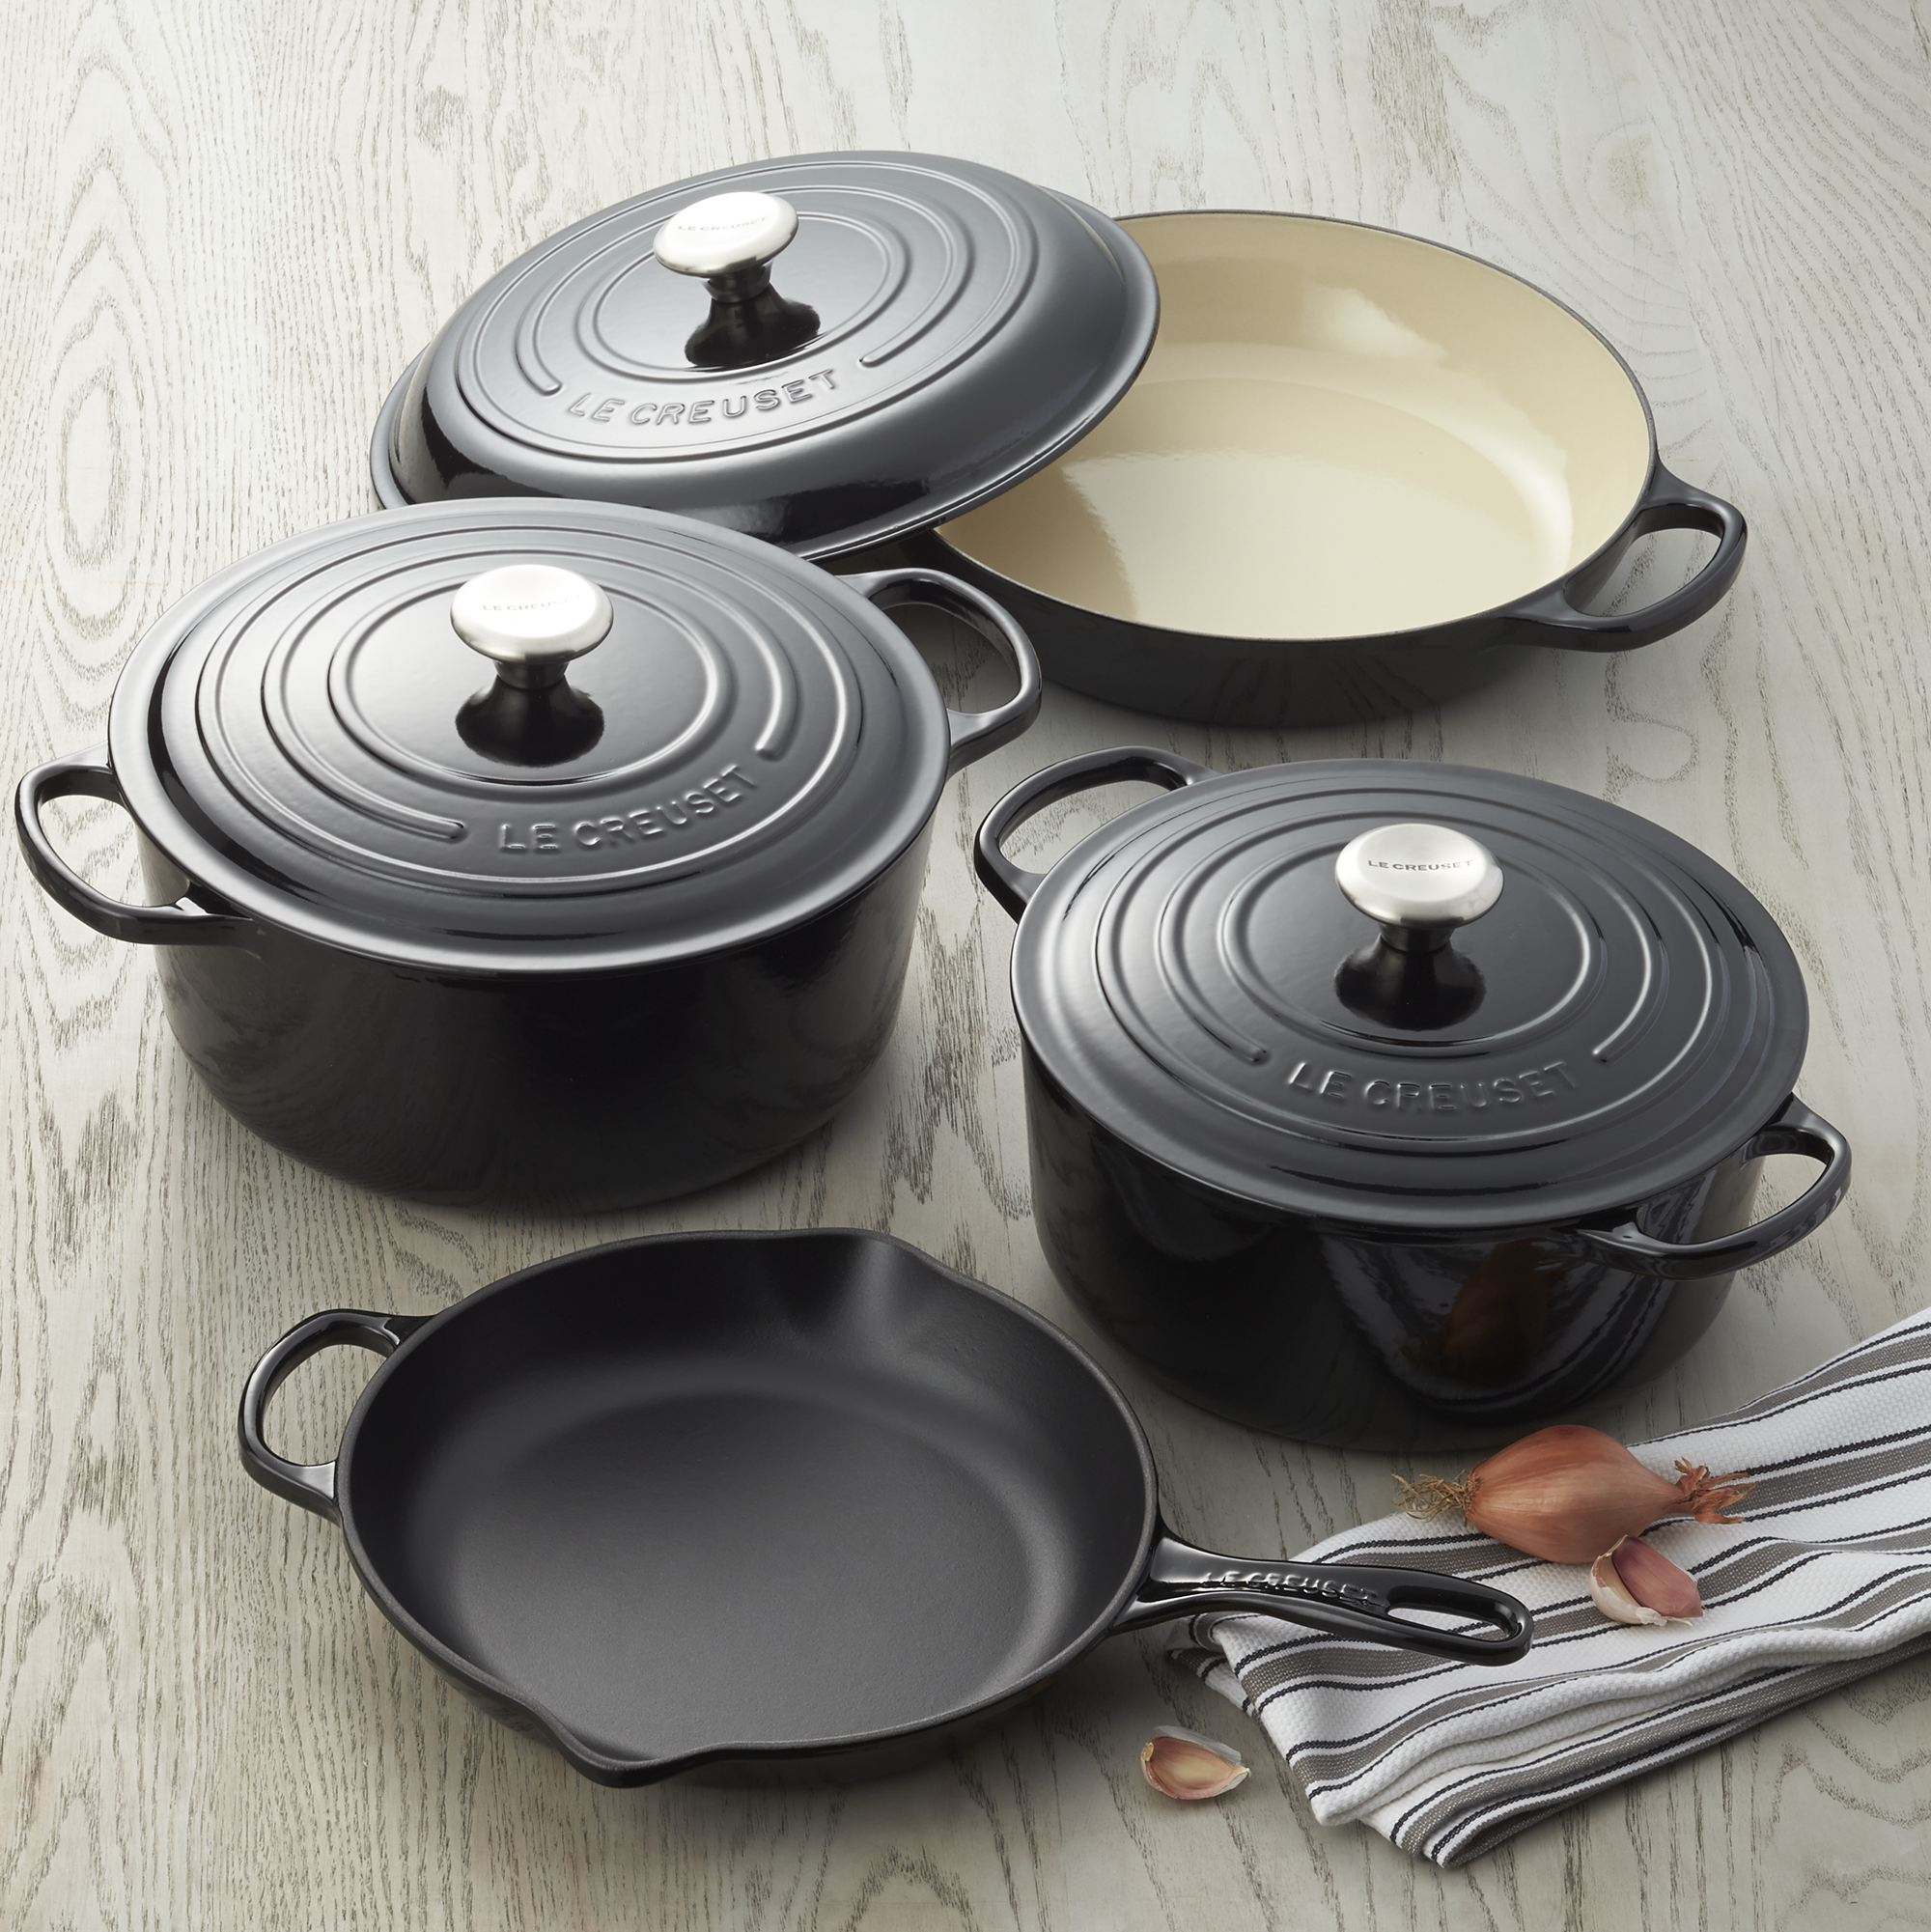 For a limited time only, Le Creuset is offering its